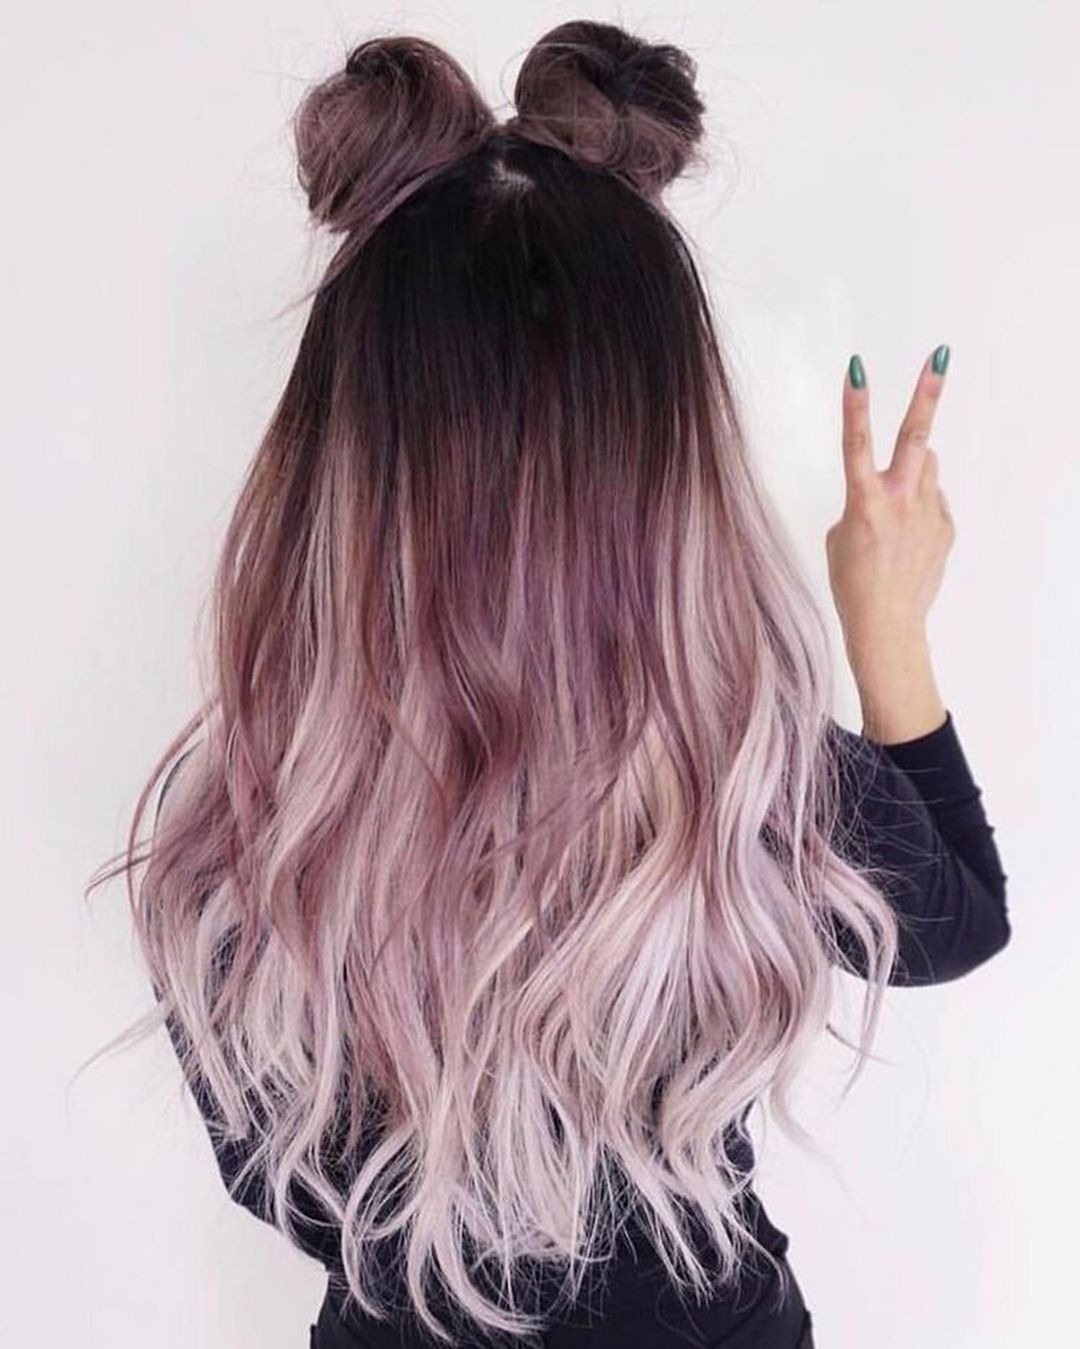 15 Amazing Dark Ombre Hair Color Ideas To Make You Look Trendy Fashions Nowadays Hair Styles Ombre Hair Color Long Hair Styles